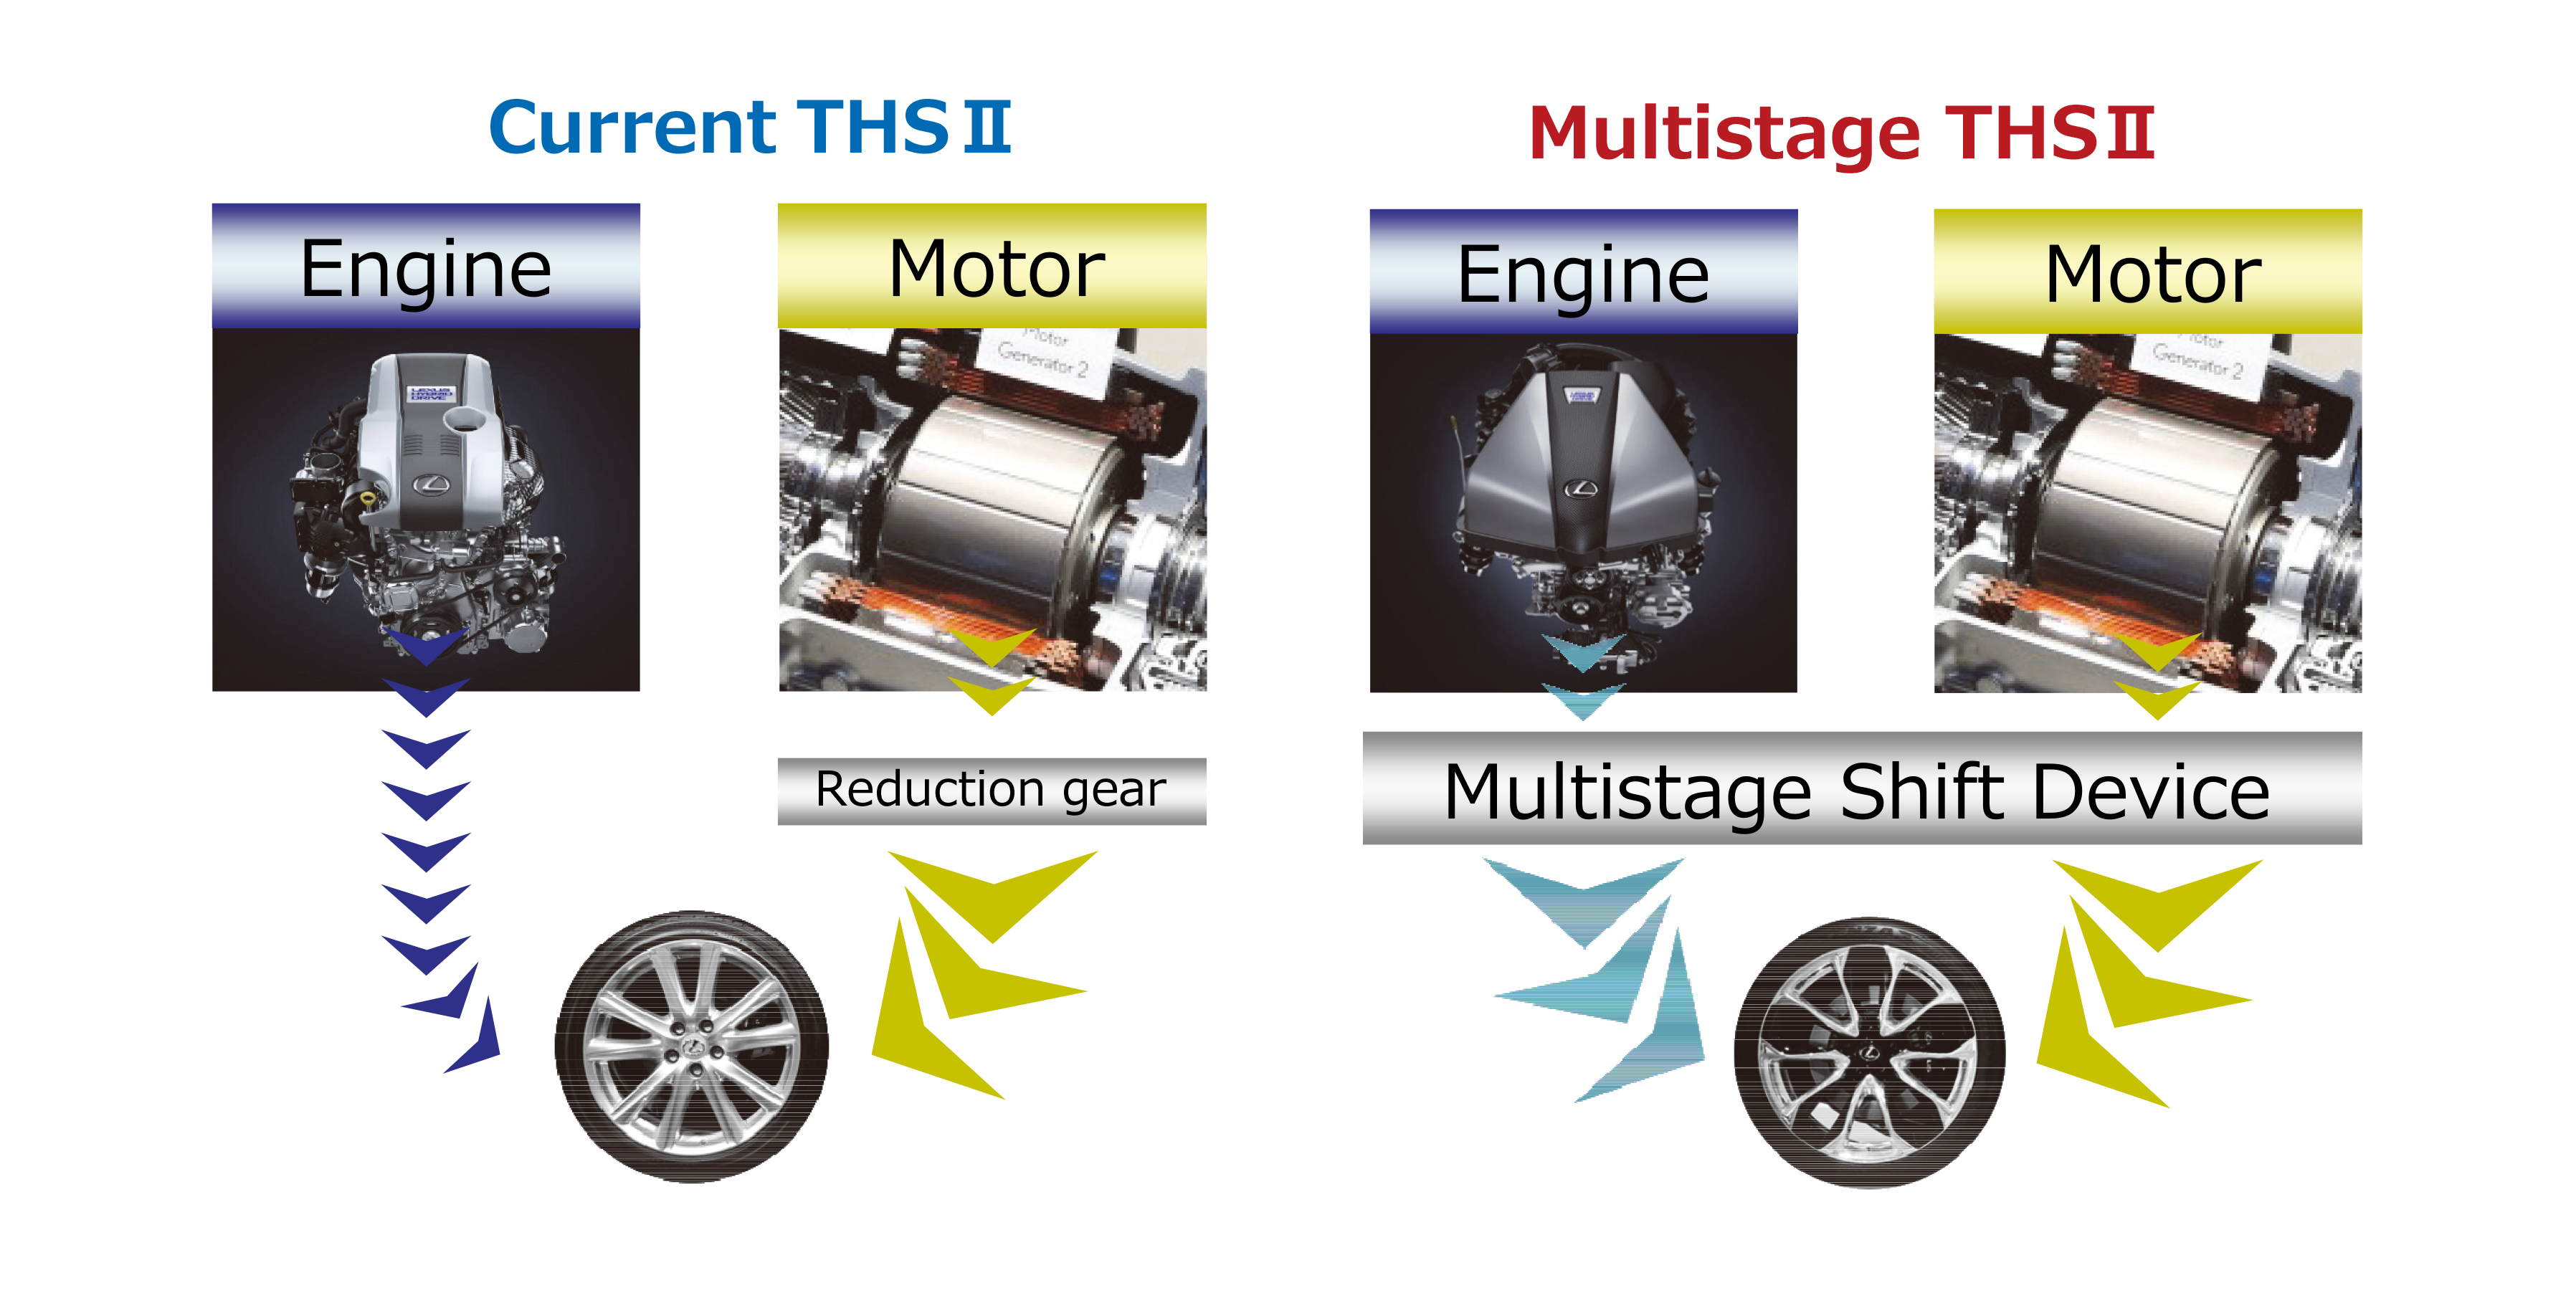 With the Multi-Stage Shift Device, both engine torque and MG torque are reinforced.